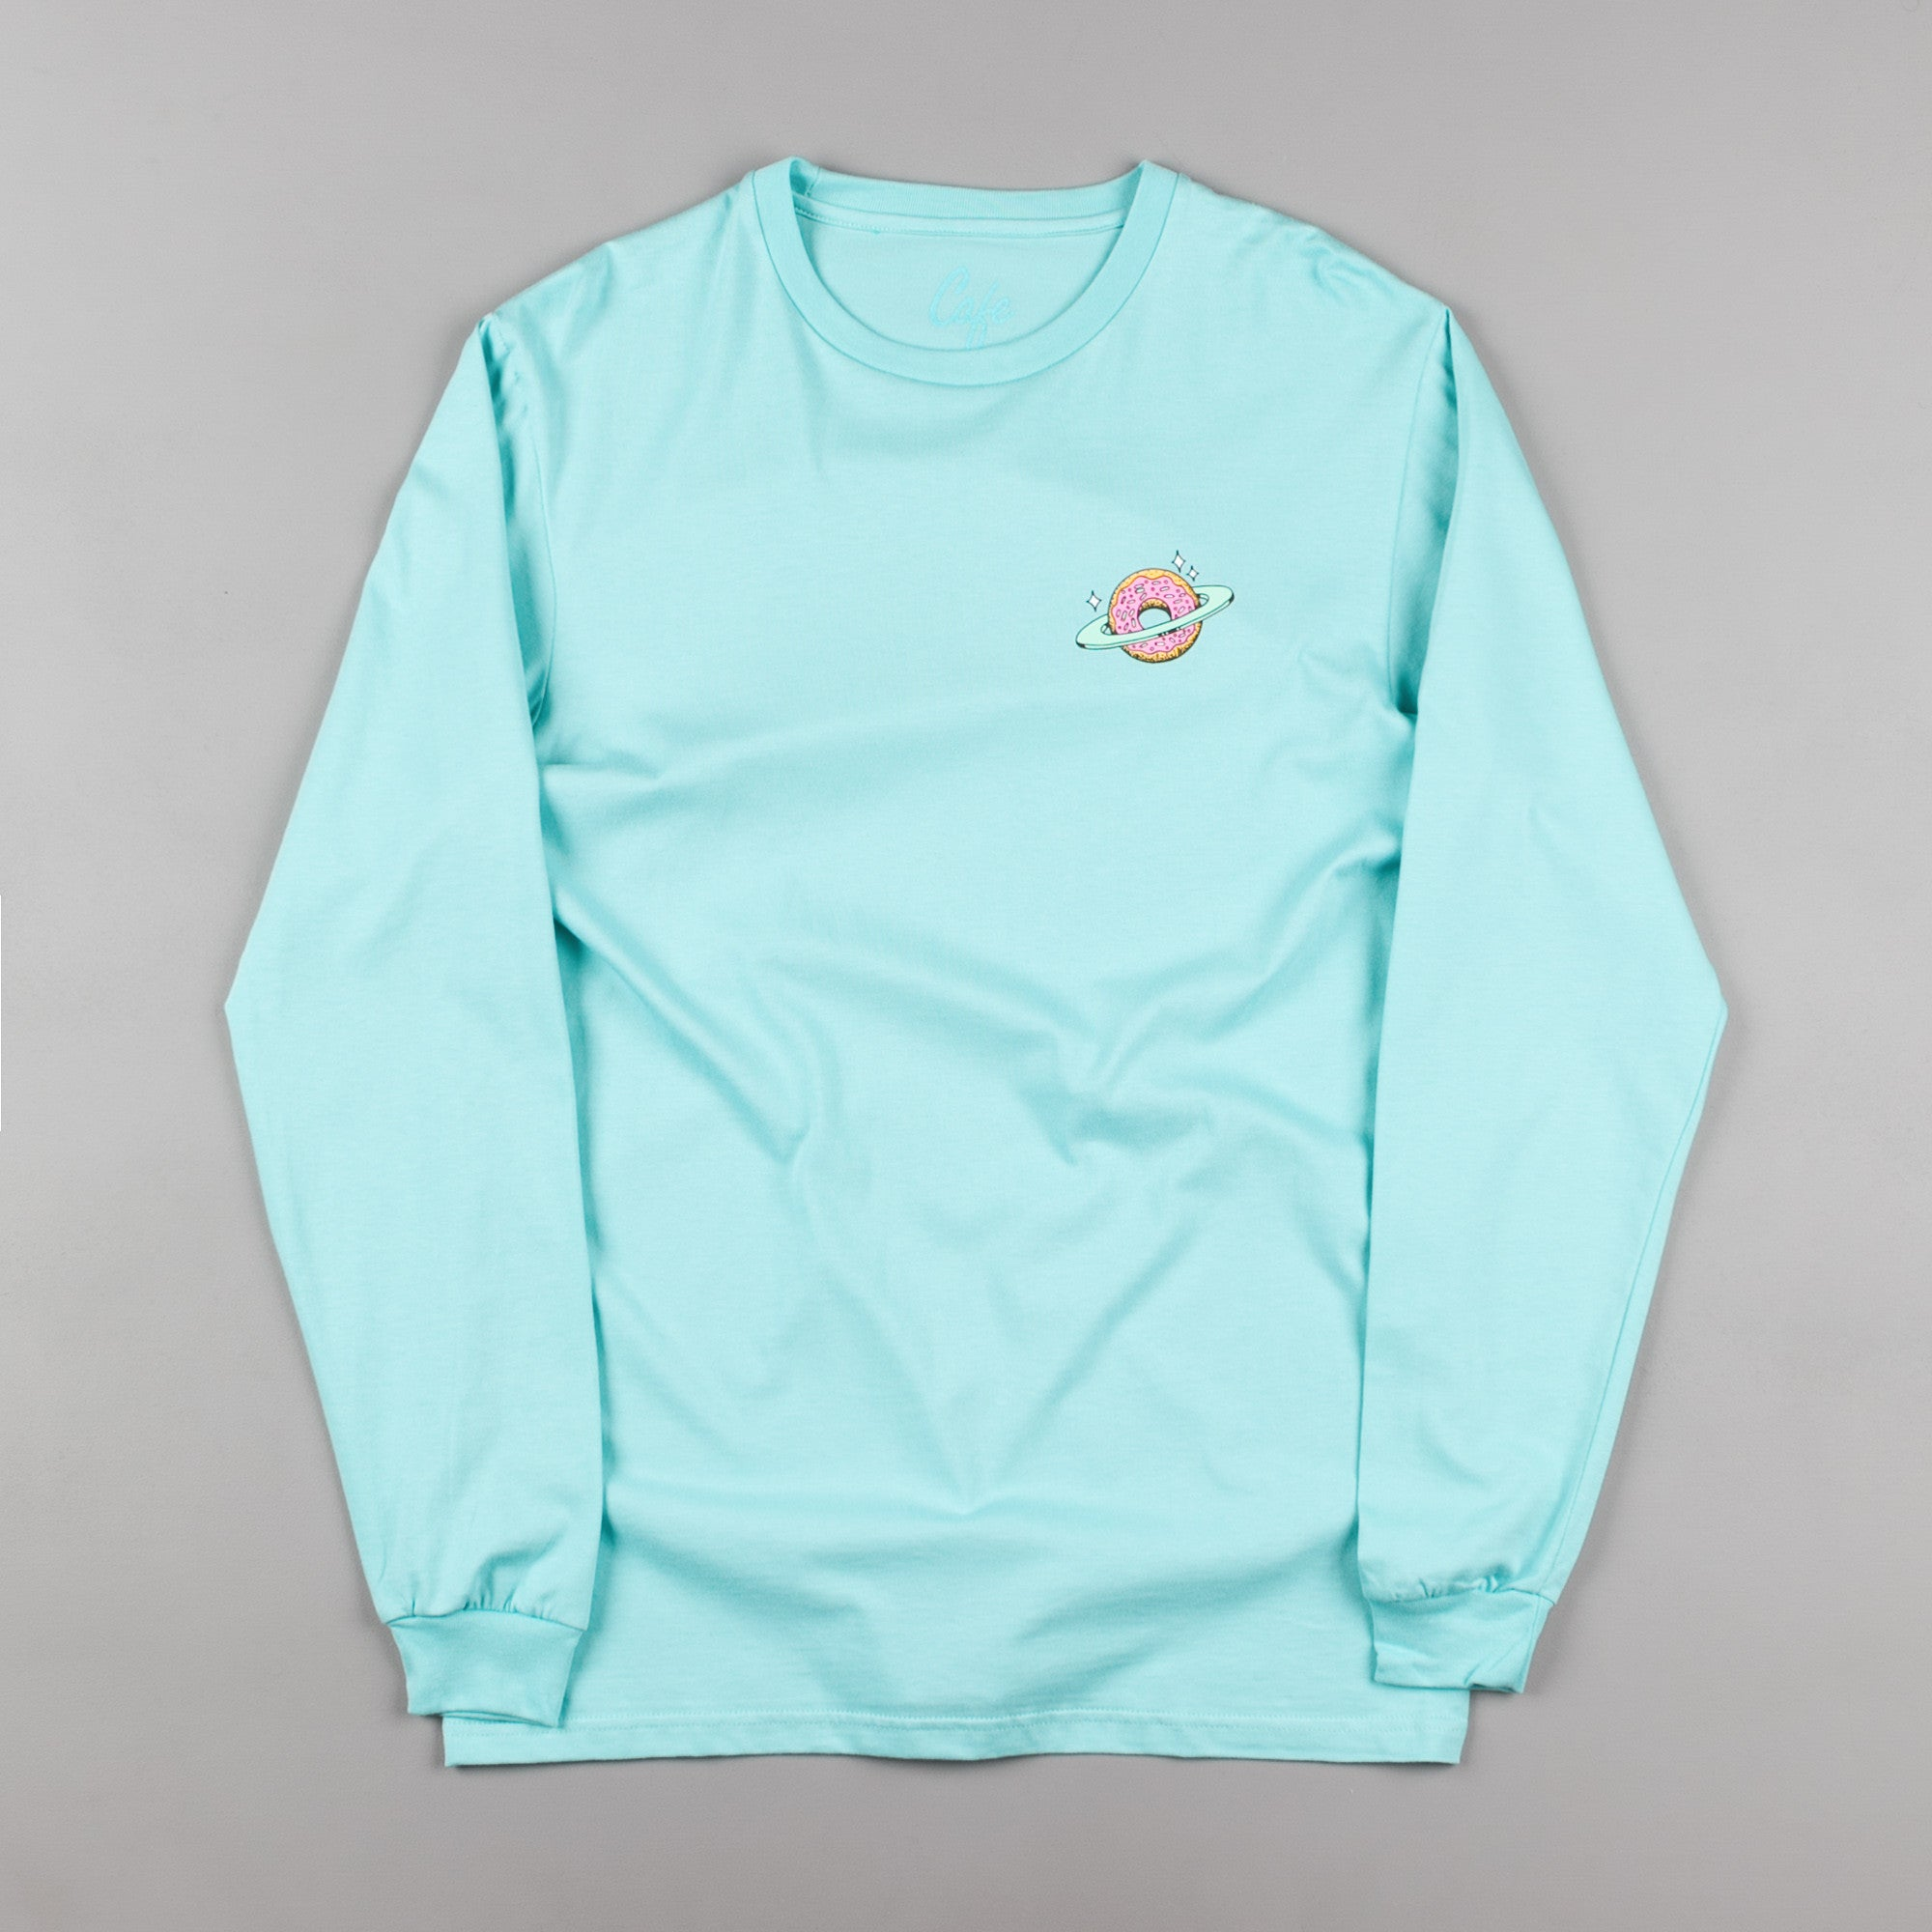 Skateboard Cafe Planet Donut Long Sleeve T-Shirt - Aqua